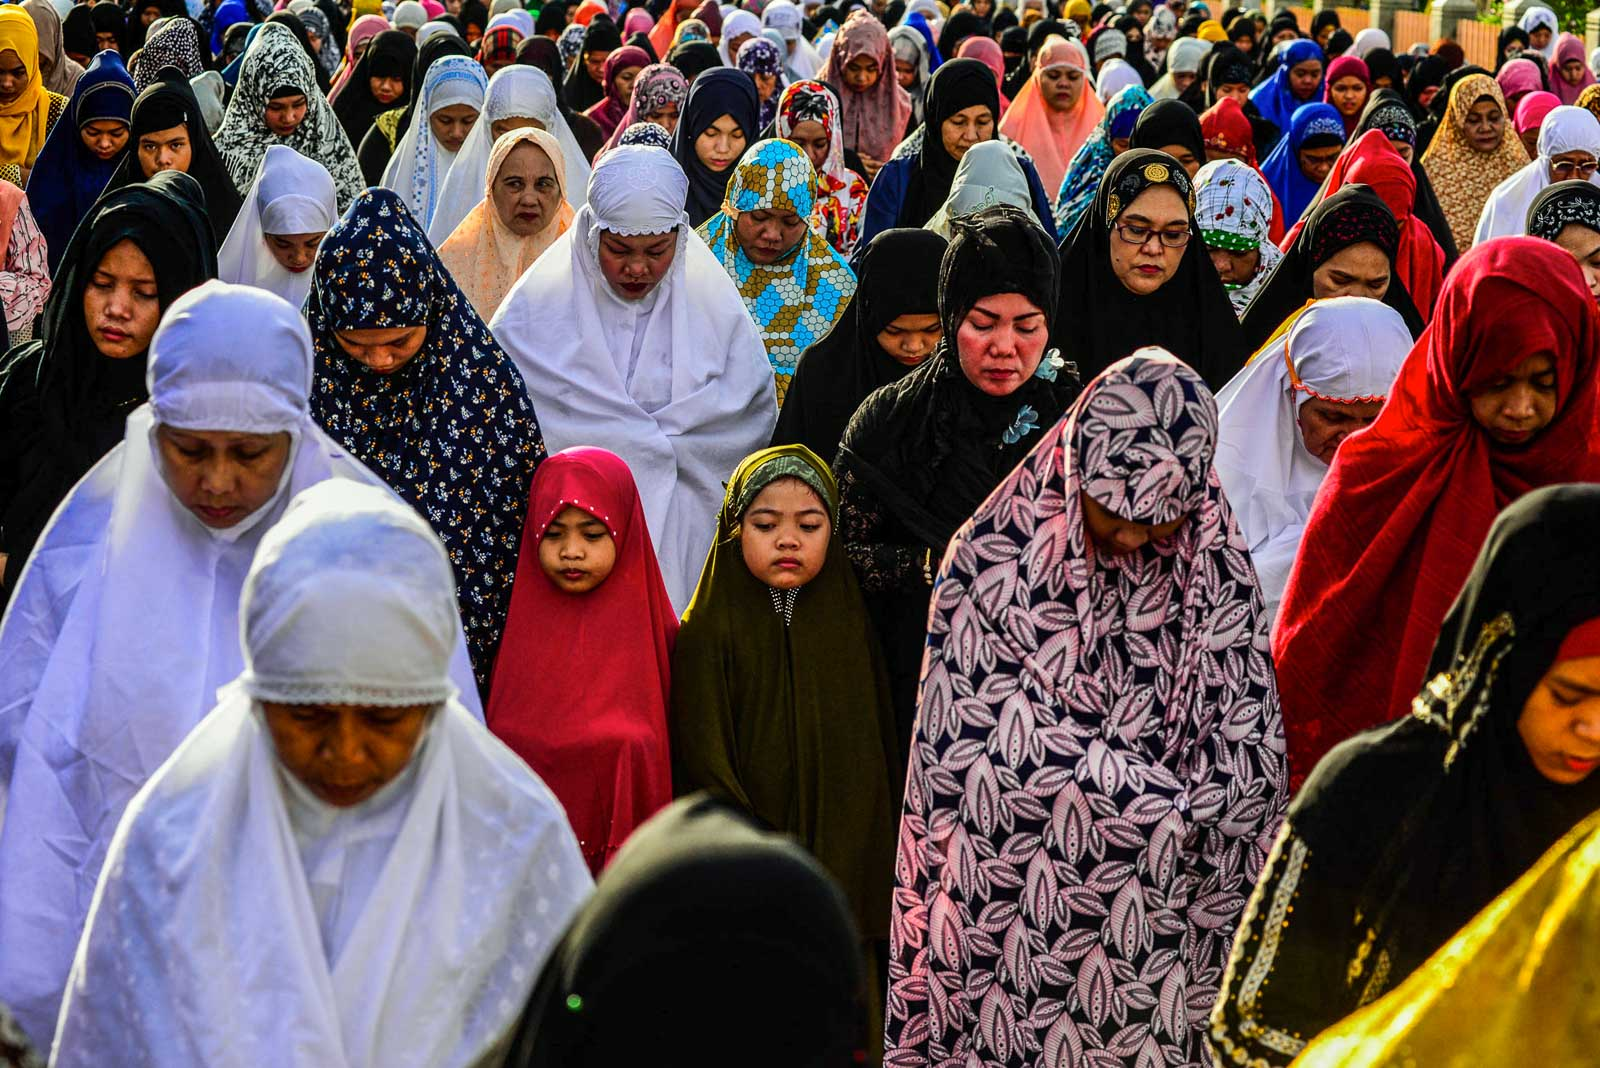 ALL WOMEN. Mothers and daughters in their fineries pray at the Blue Mosque in Taguig City. Photo by Maria Tan/Rappler